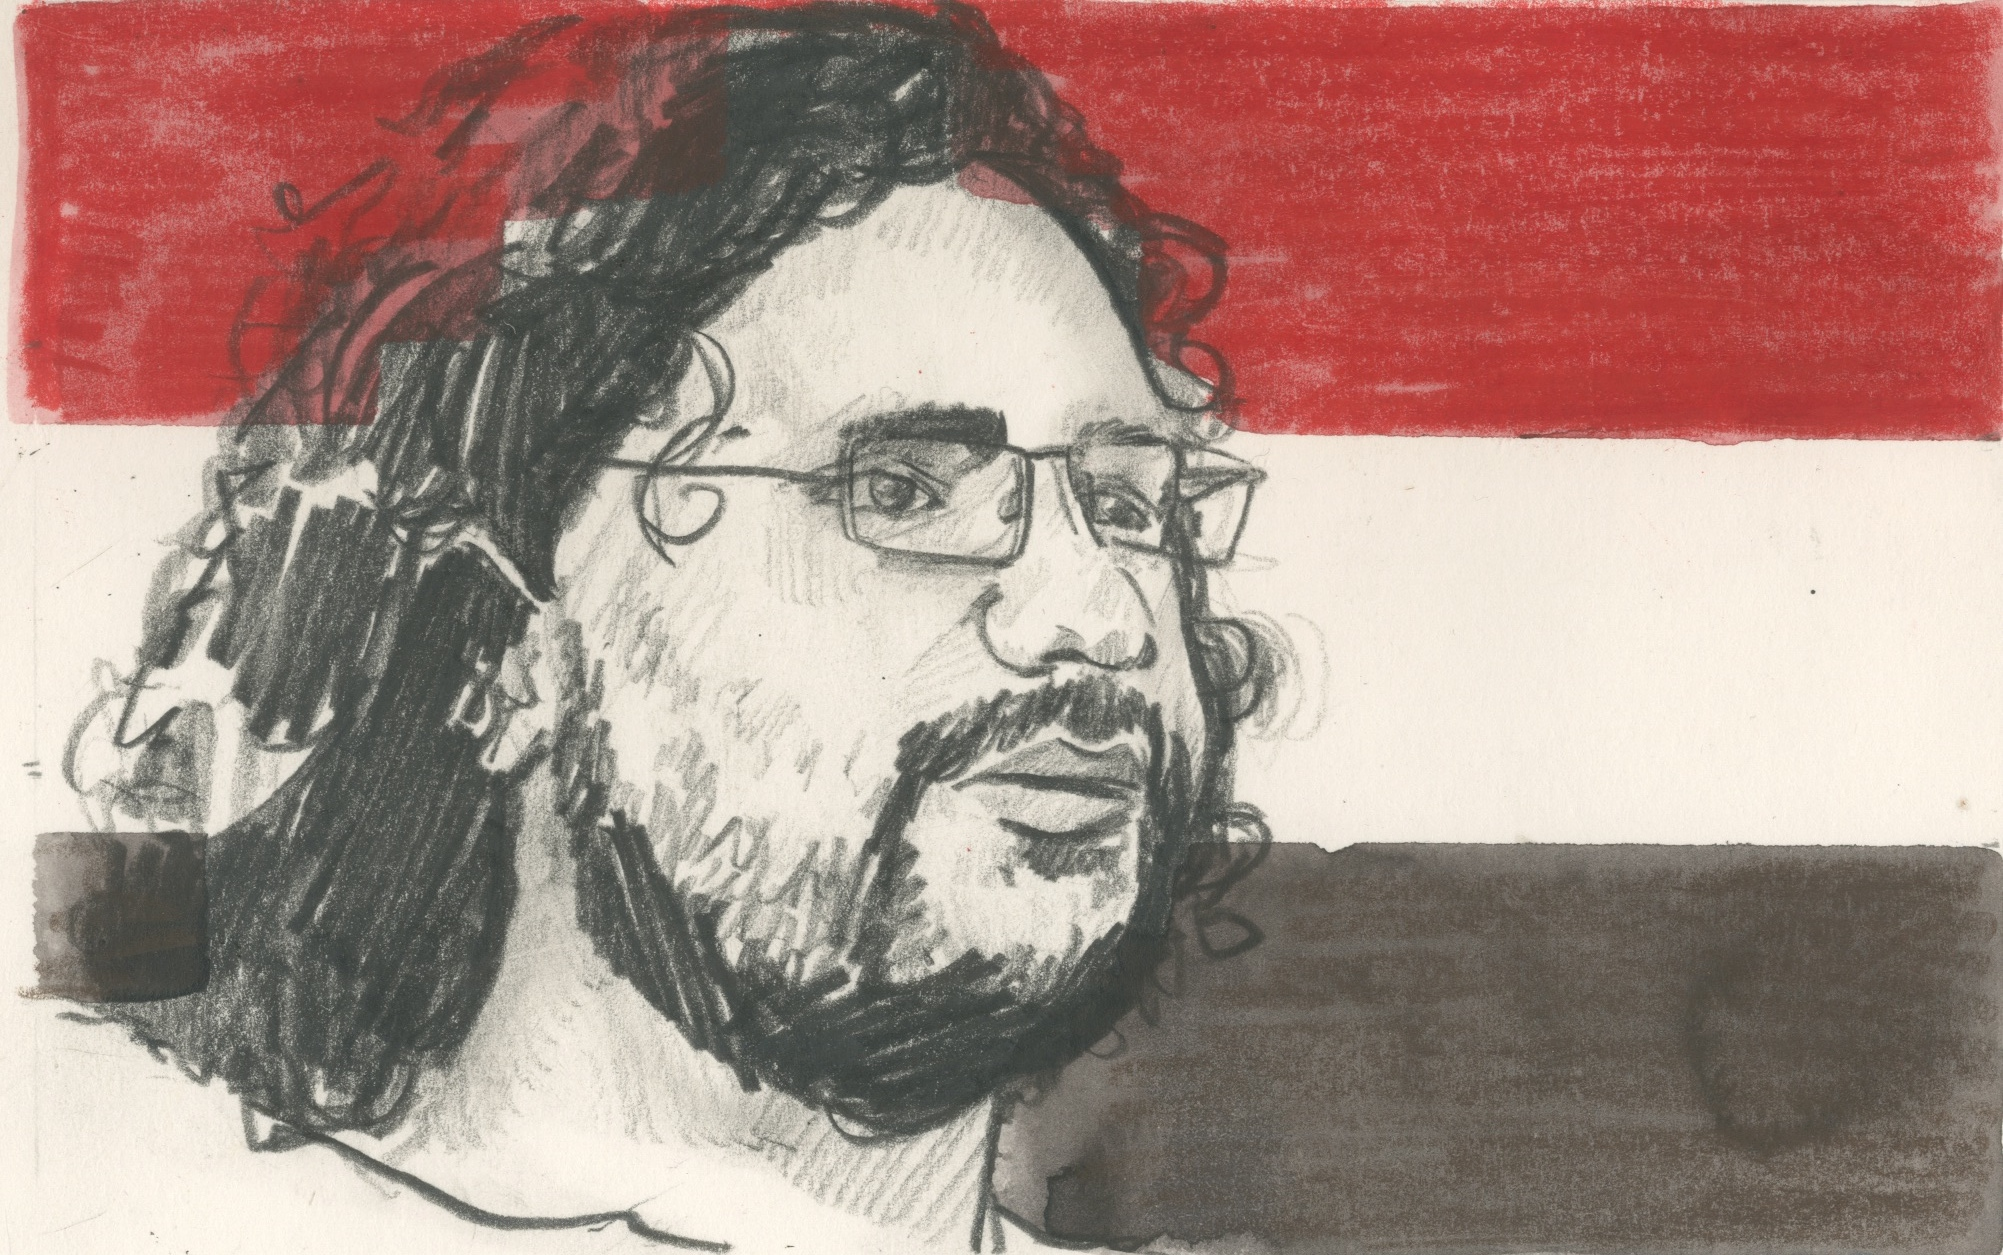 23/02/15Prominent pro-democracy activistAlaa Abd El Fattah has been imprisoned by an Egyptian court for five years in prison for violating a law banning unauthorised protests in what rights groups describe as an ongoing clampdown on dissent